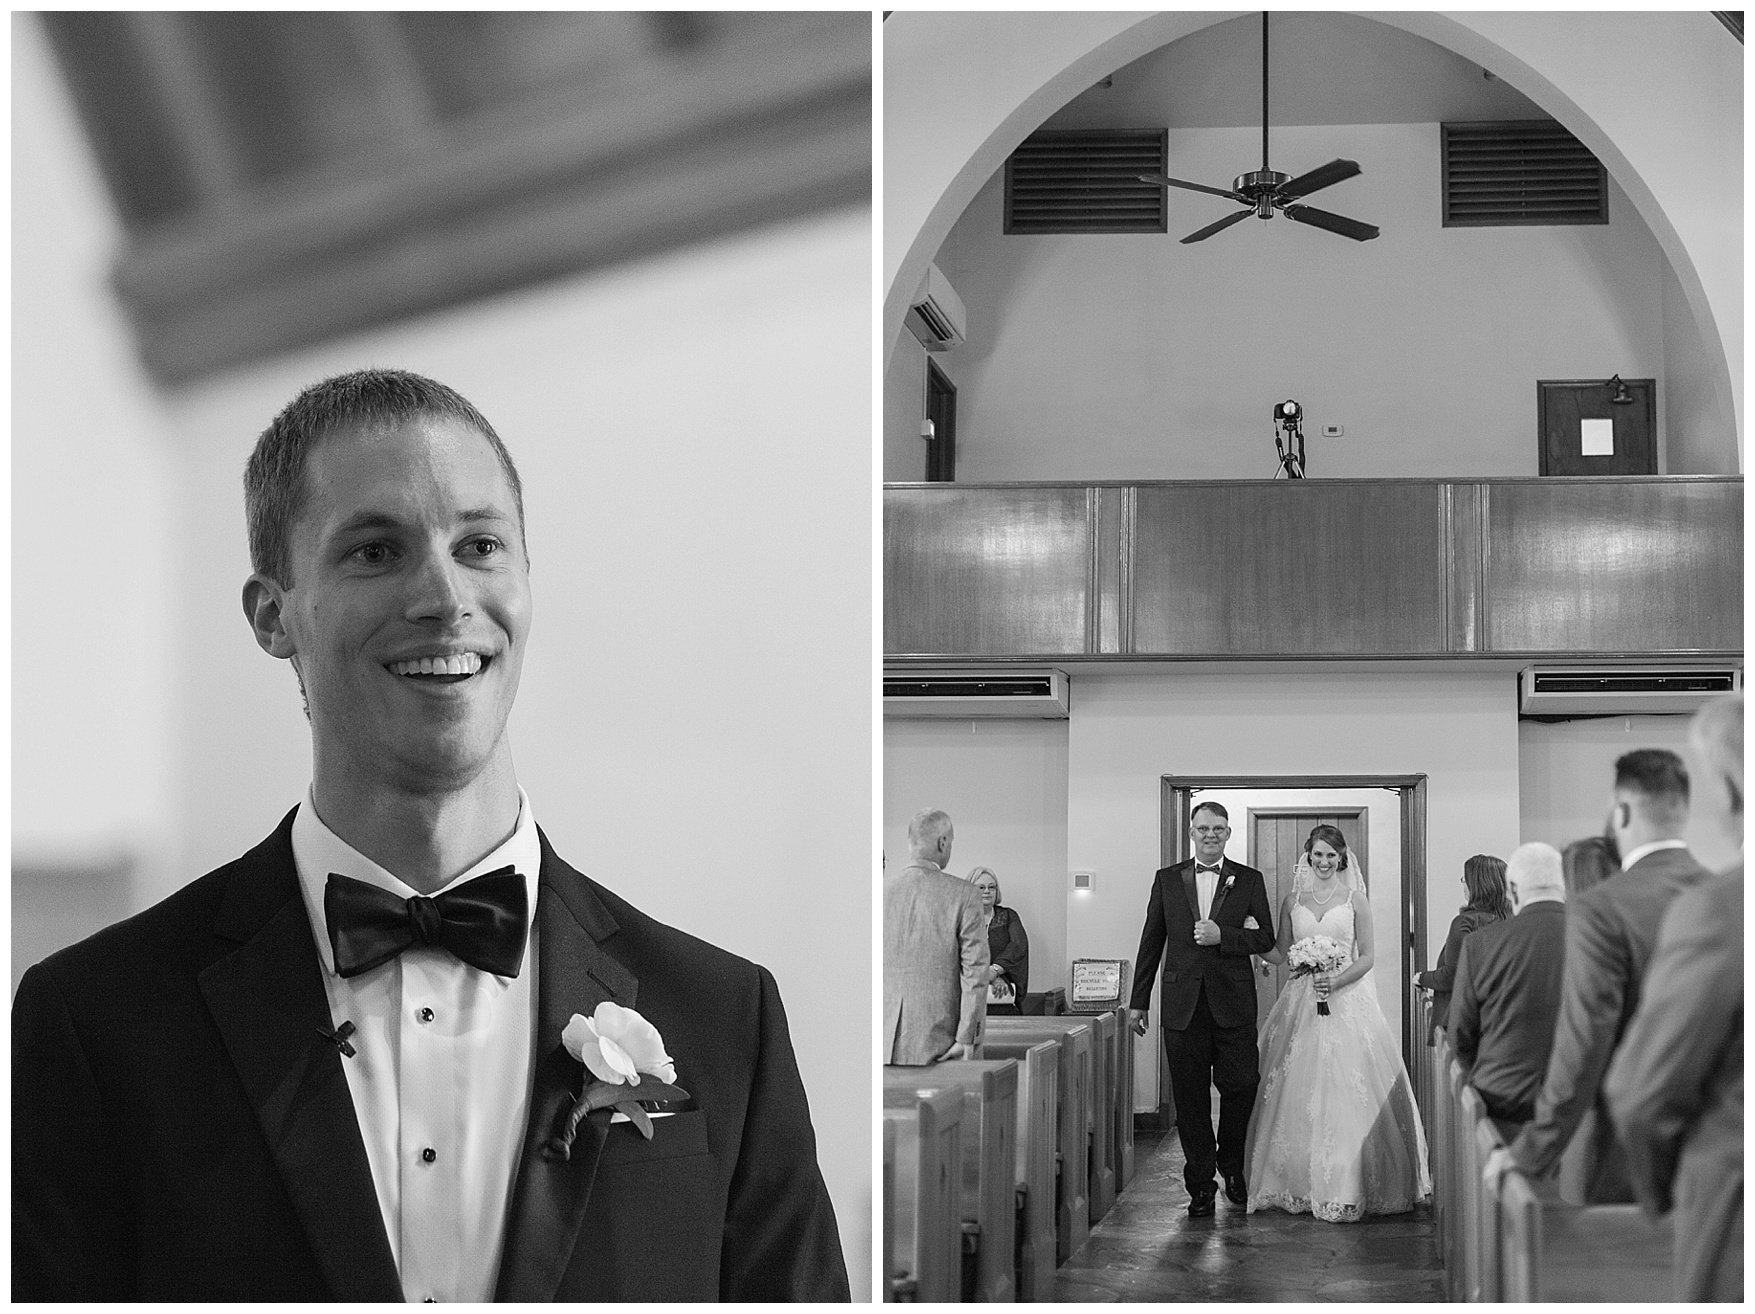 Roanoke, Virginia church wedding || Christ Lutheran Church in Roanoke || Wedding at The Braeloch on Glenburn Farms